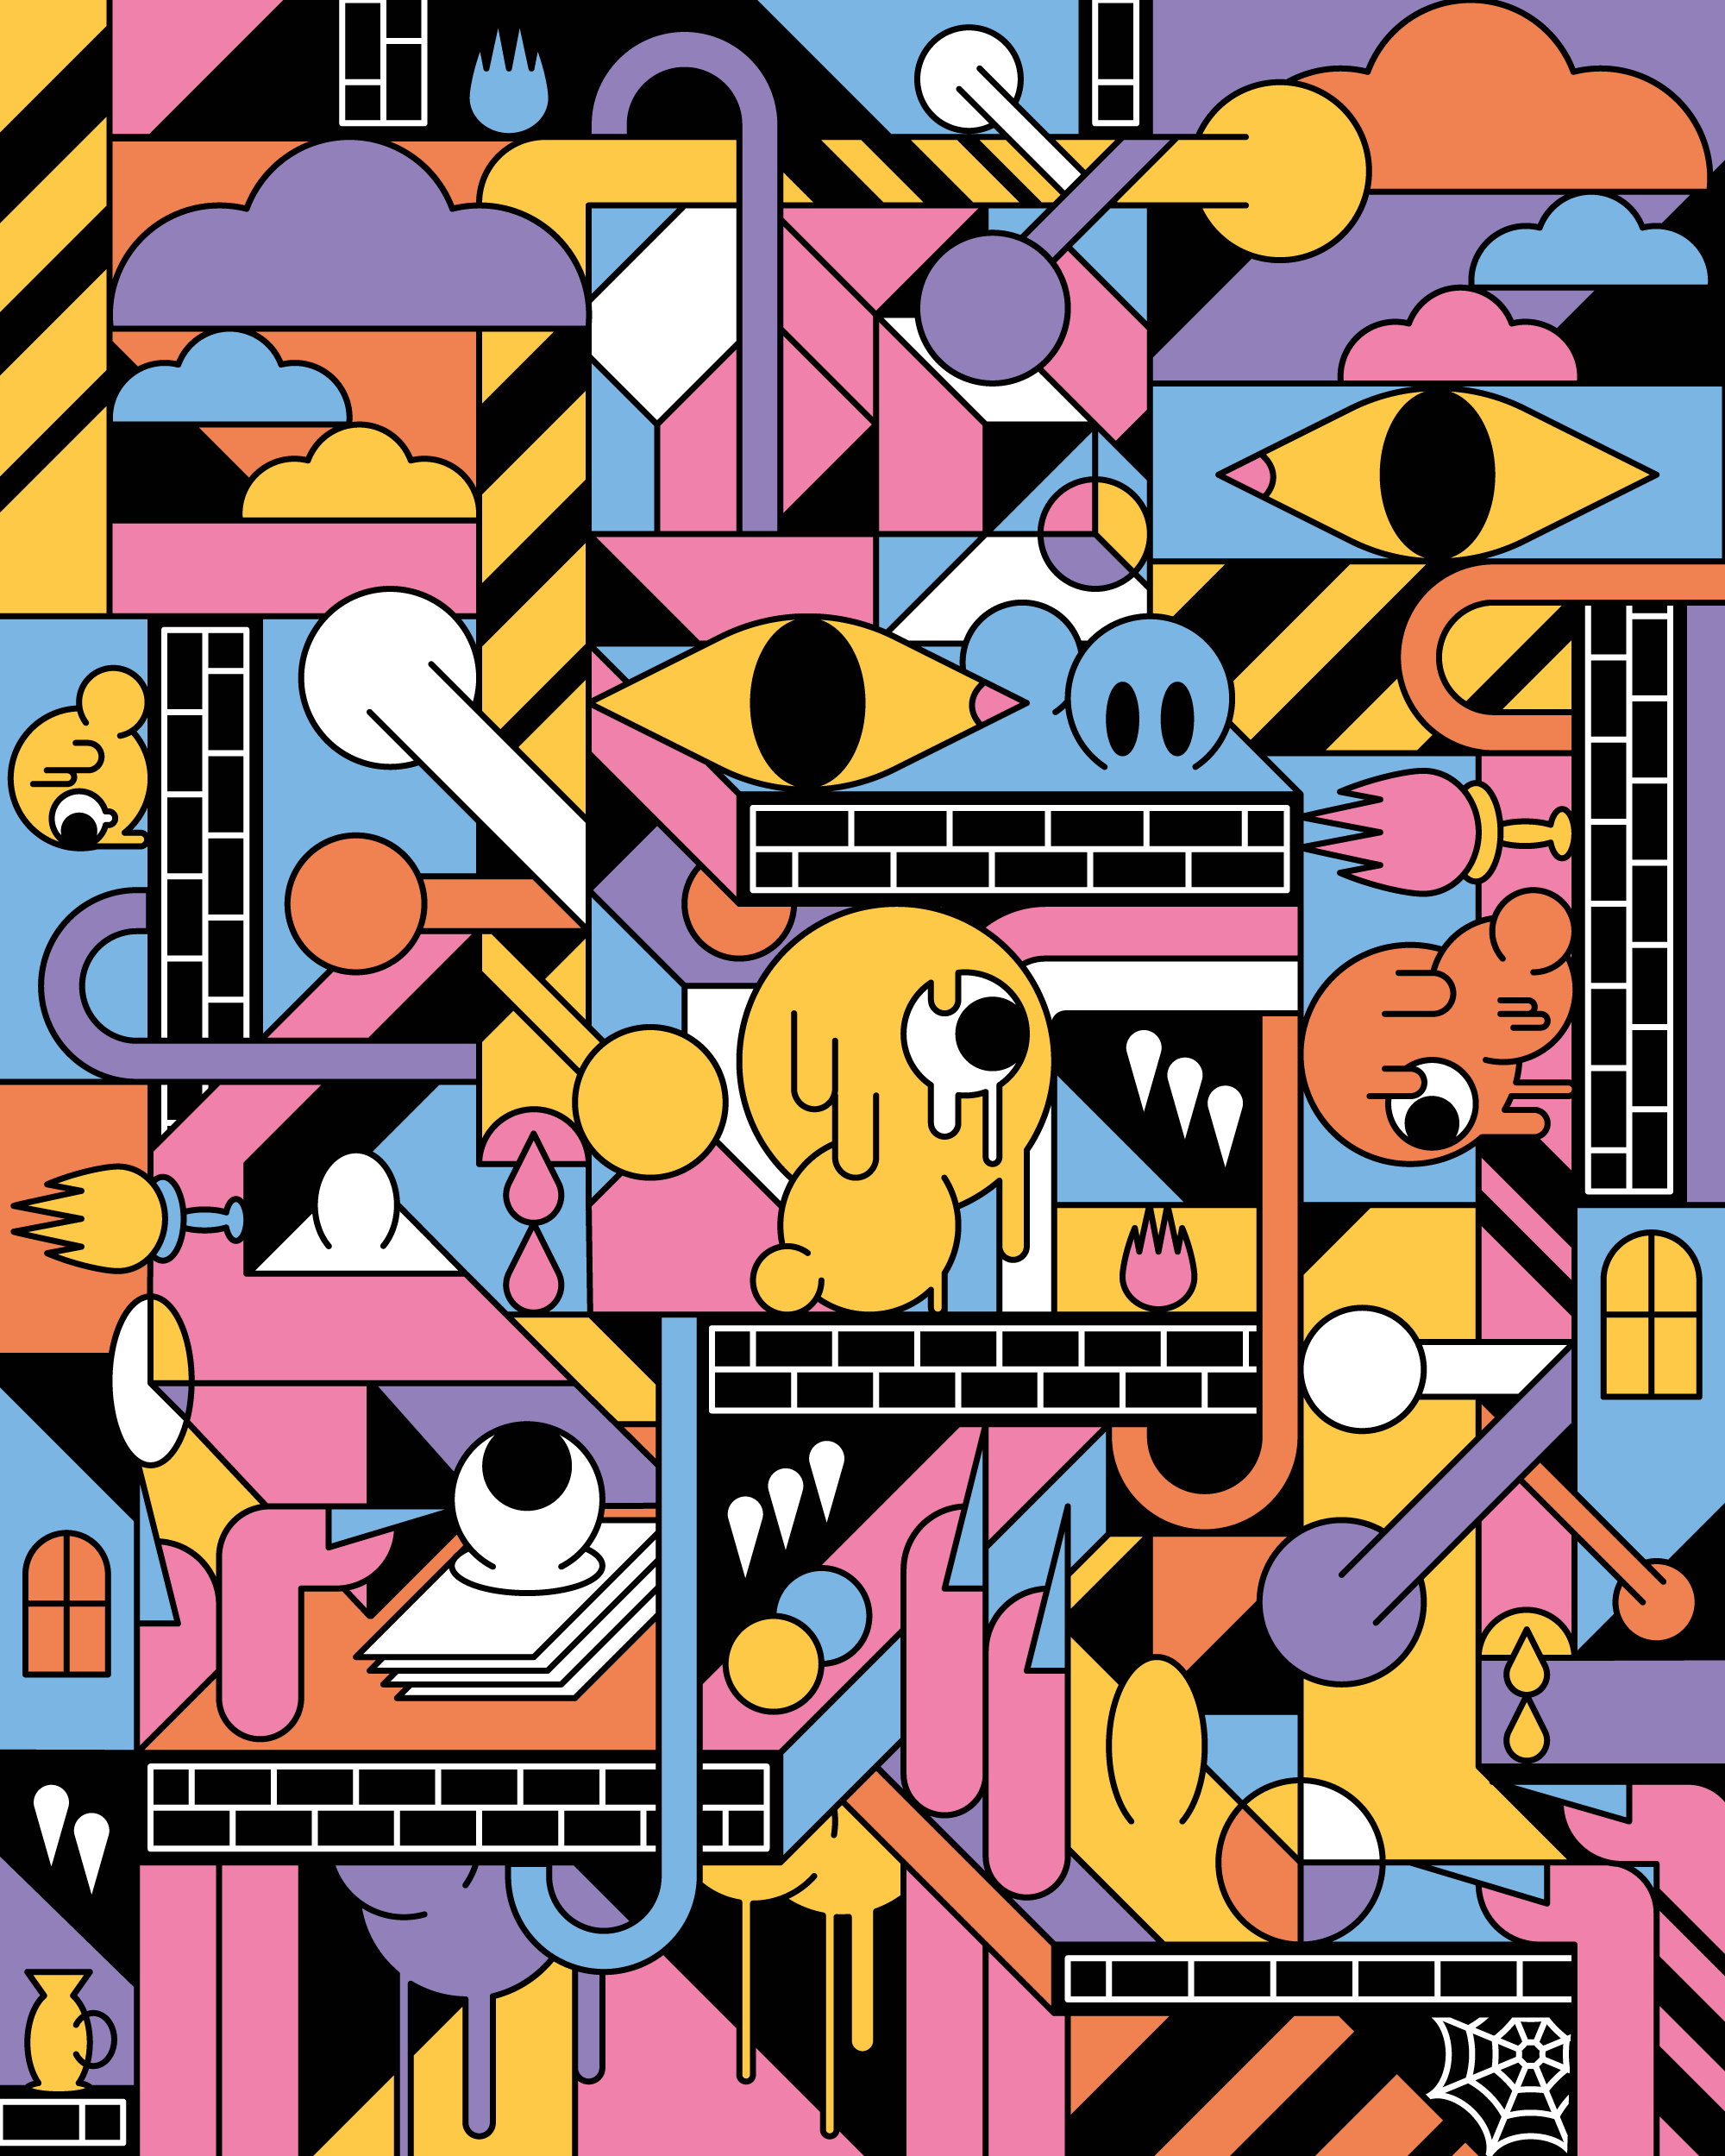 illustrator graphic designer jari johannes